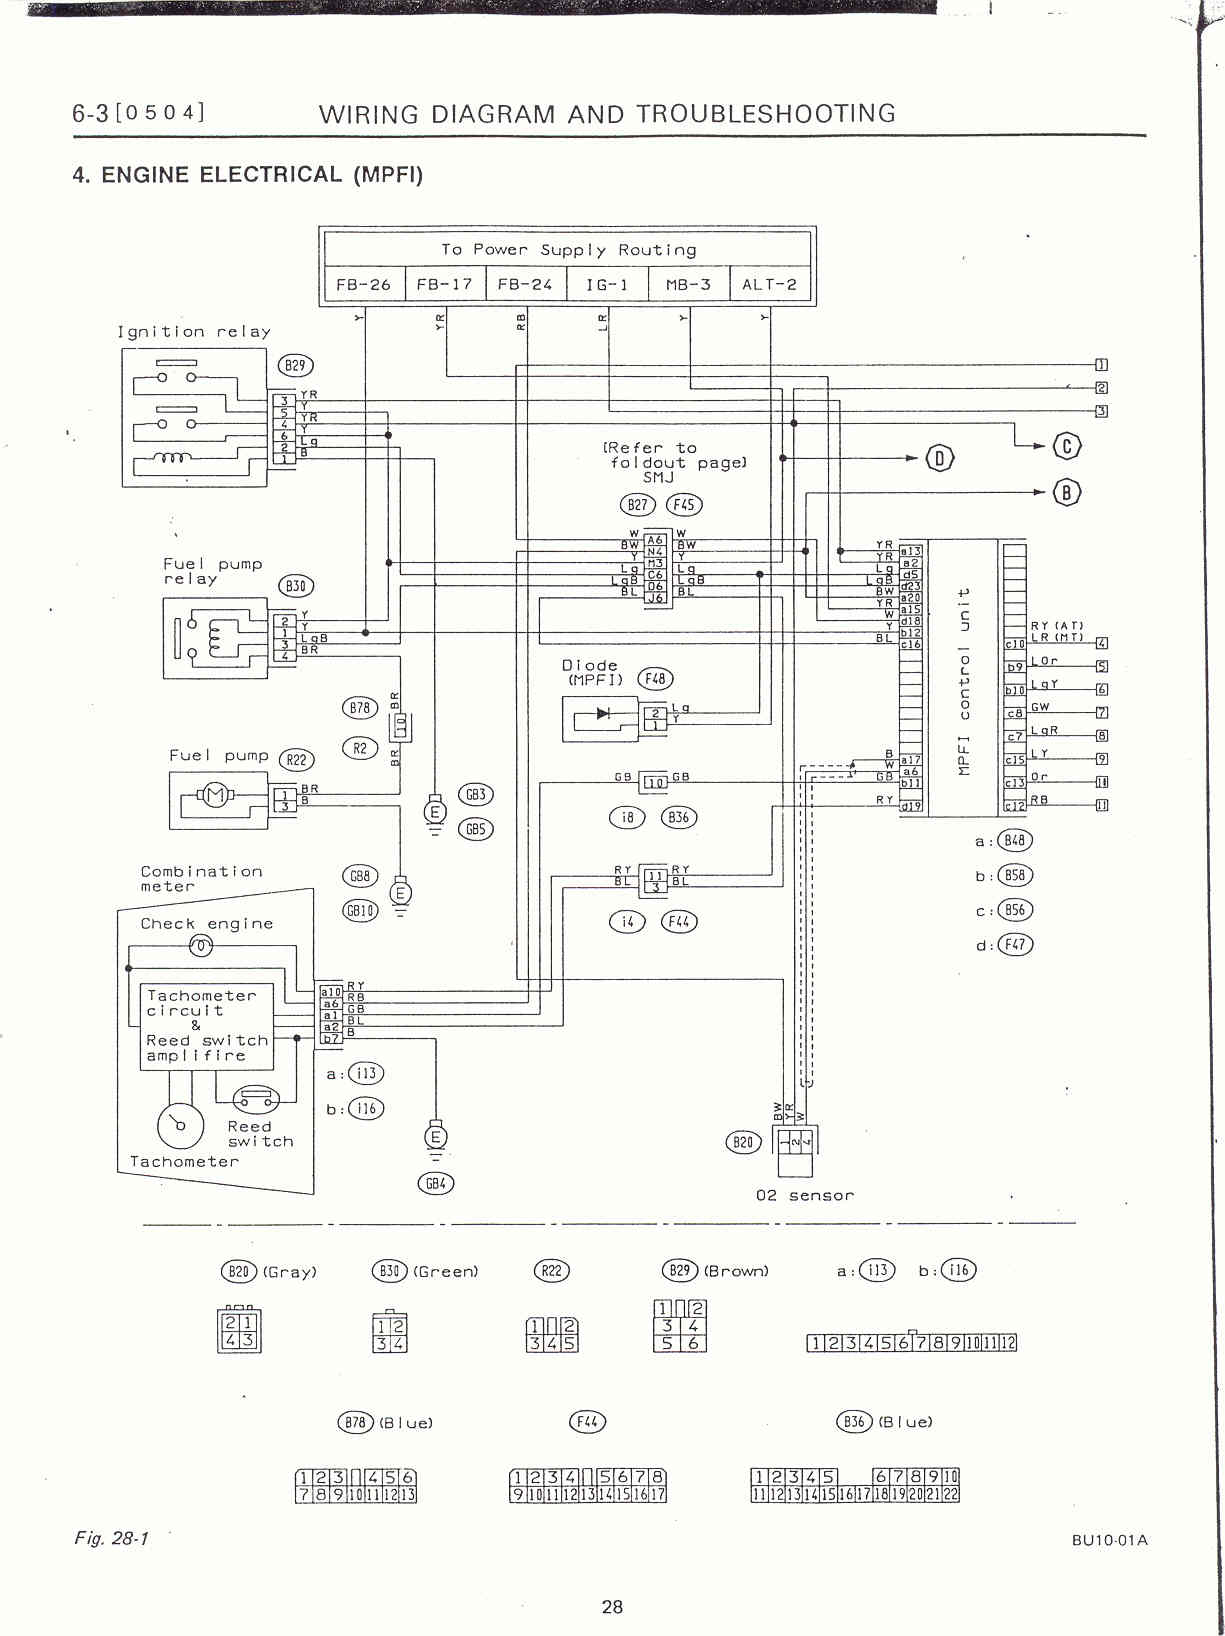 Surrealmirage Subaru Legacy Swap Electrical Info Notes Relay Pin Numbers Engine Page 1